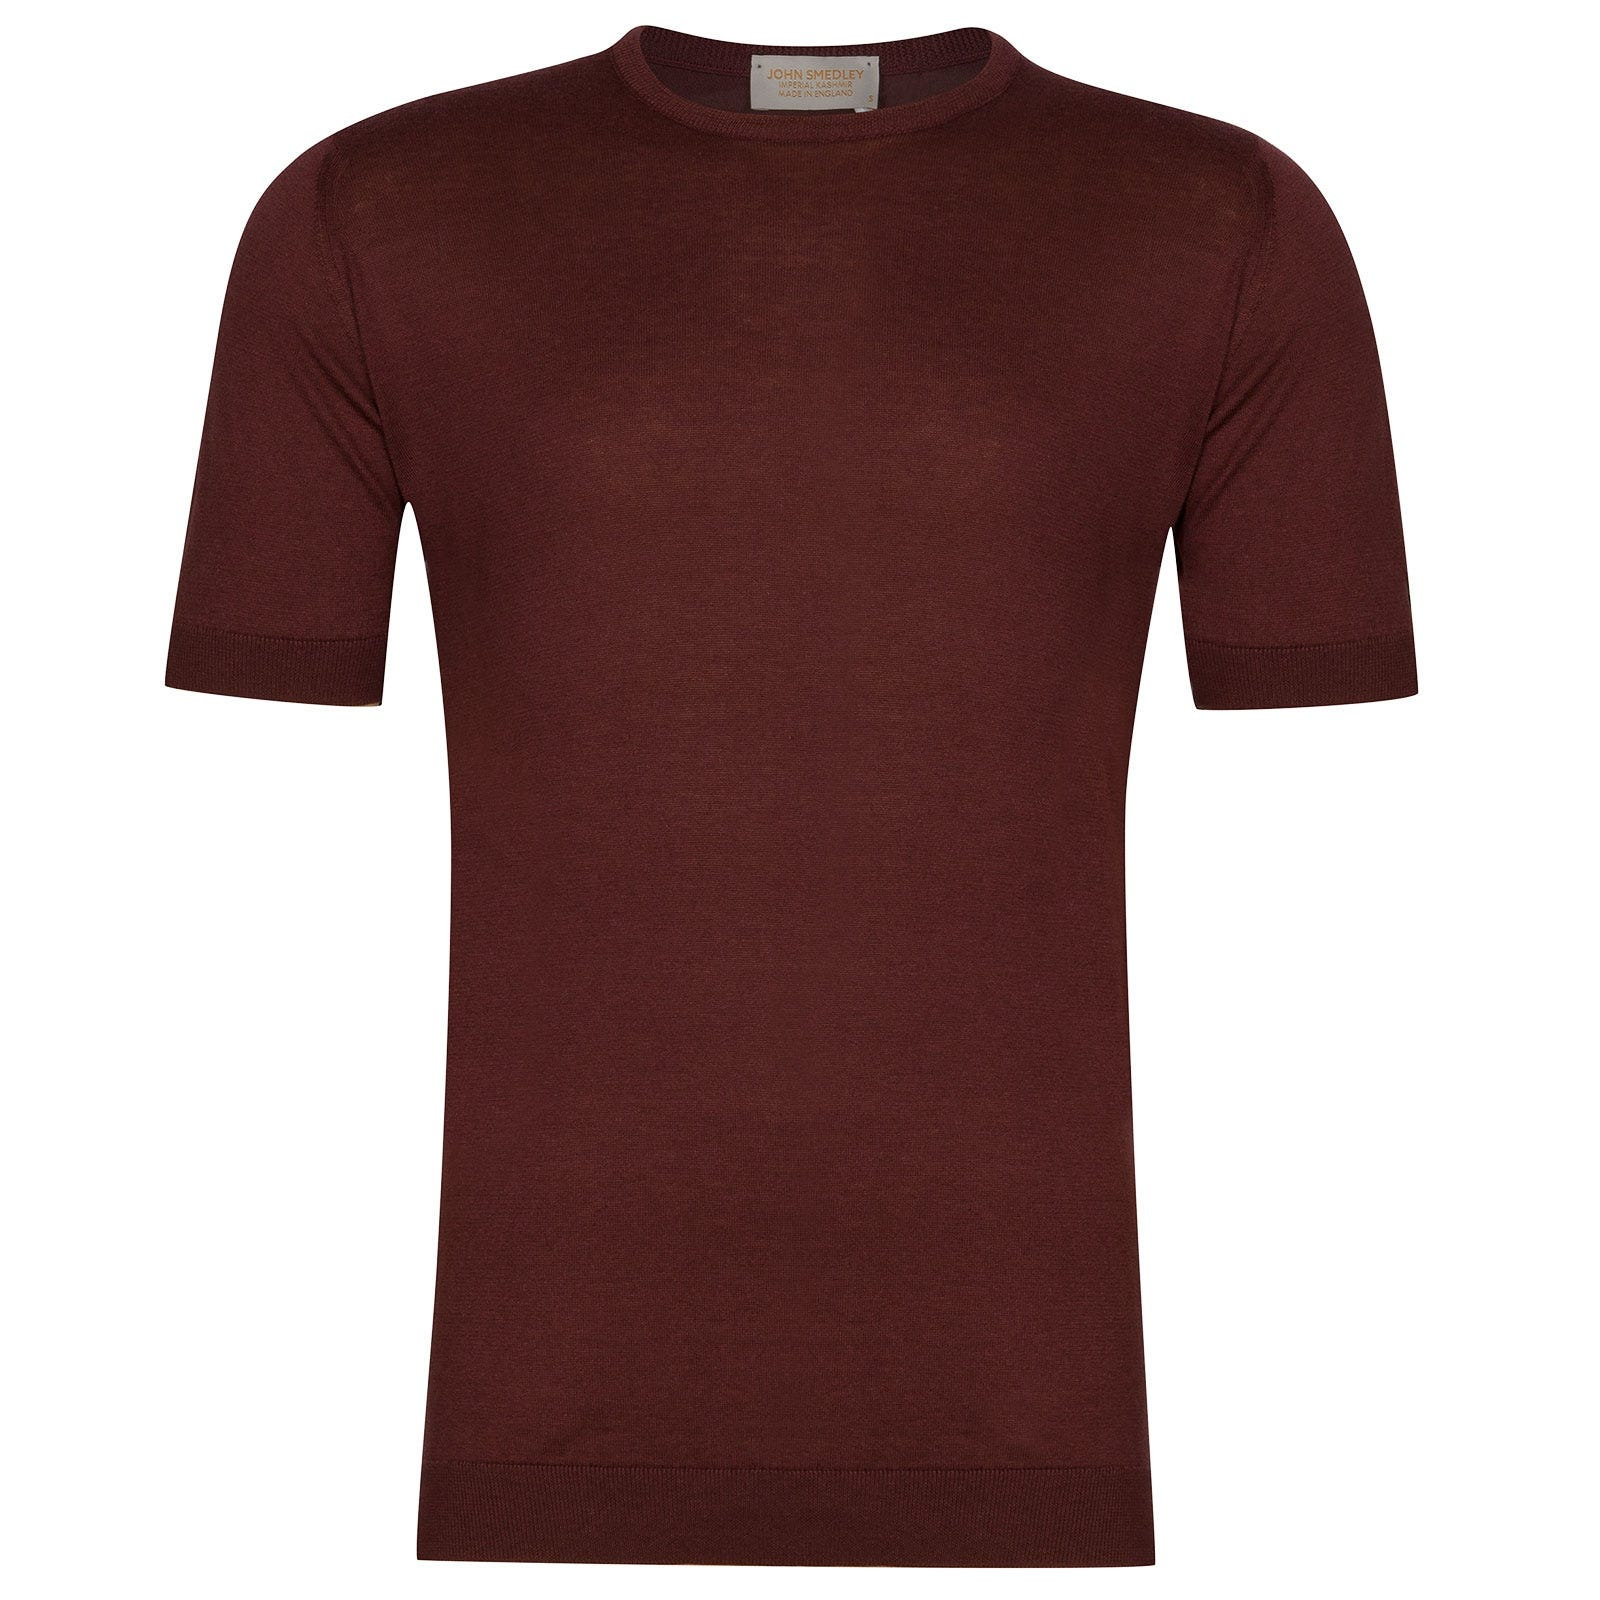 John Smedley Stonwell Sea Island Cotton and Cashmere T-Shirt in